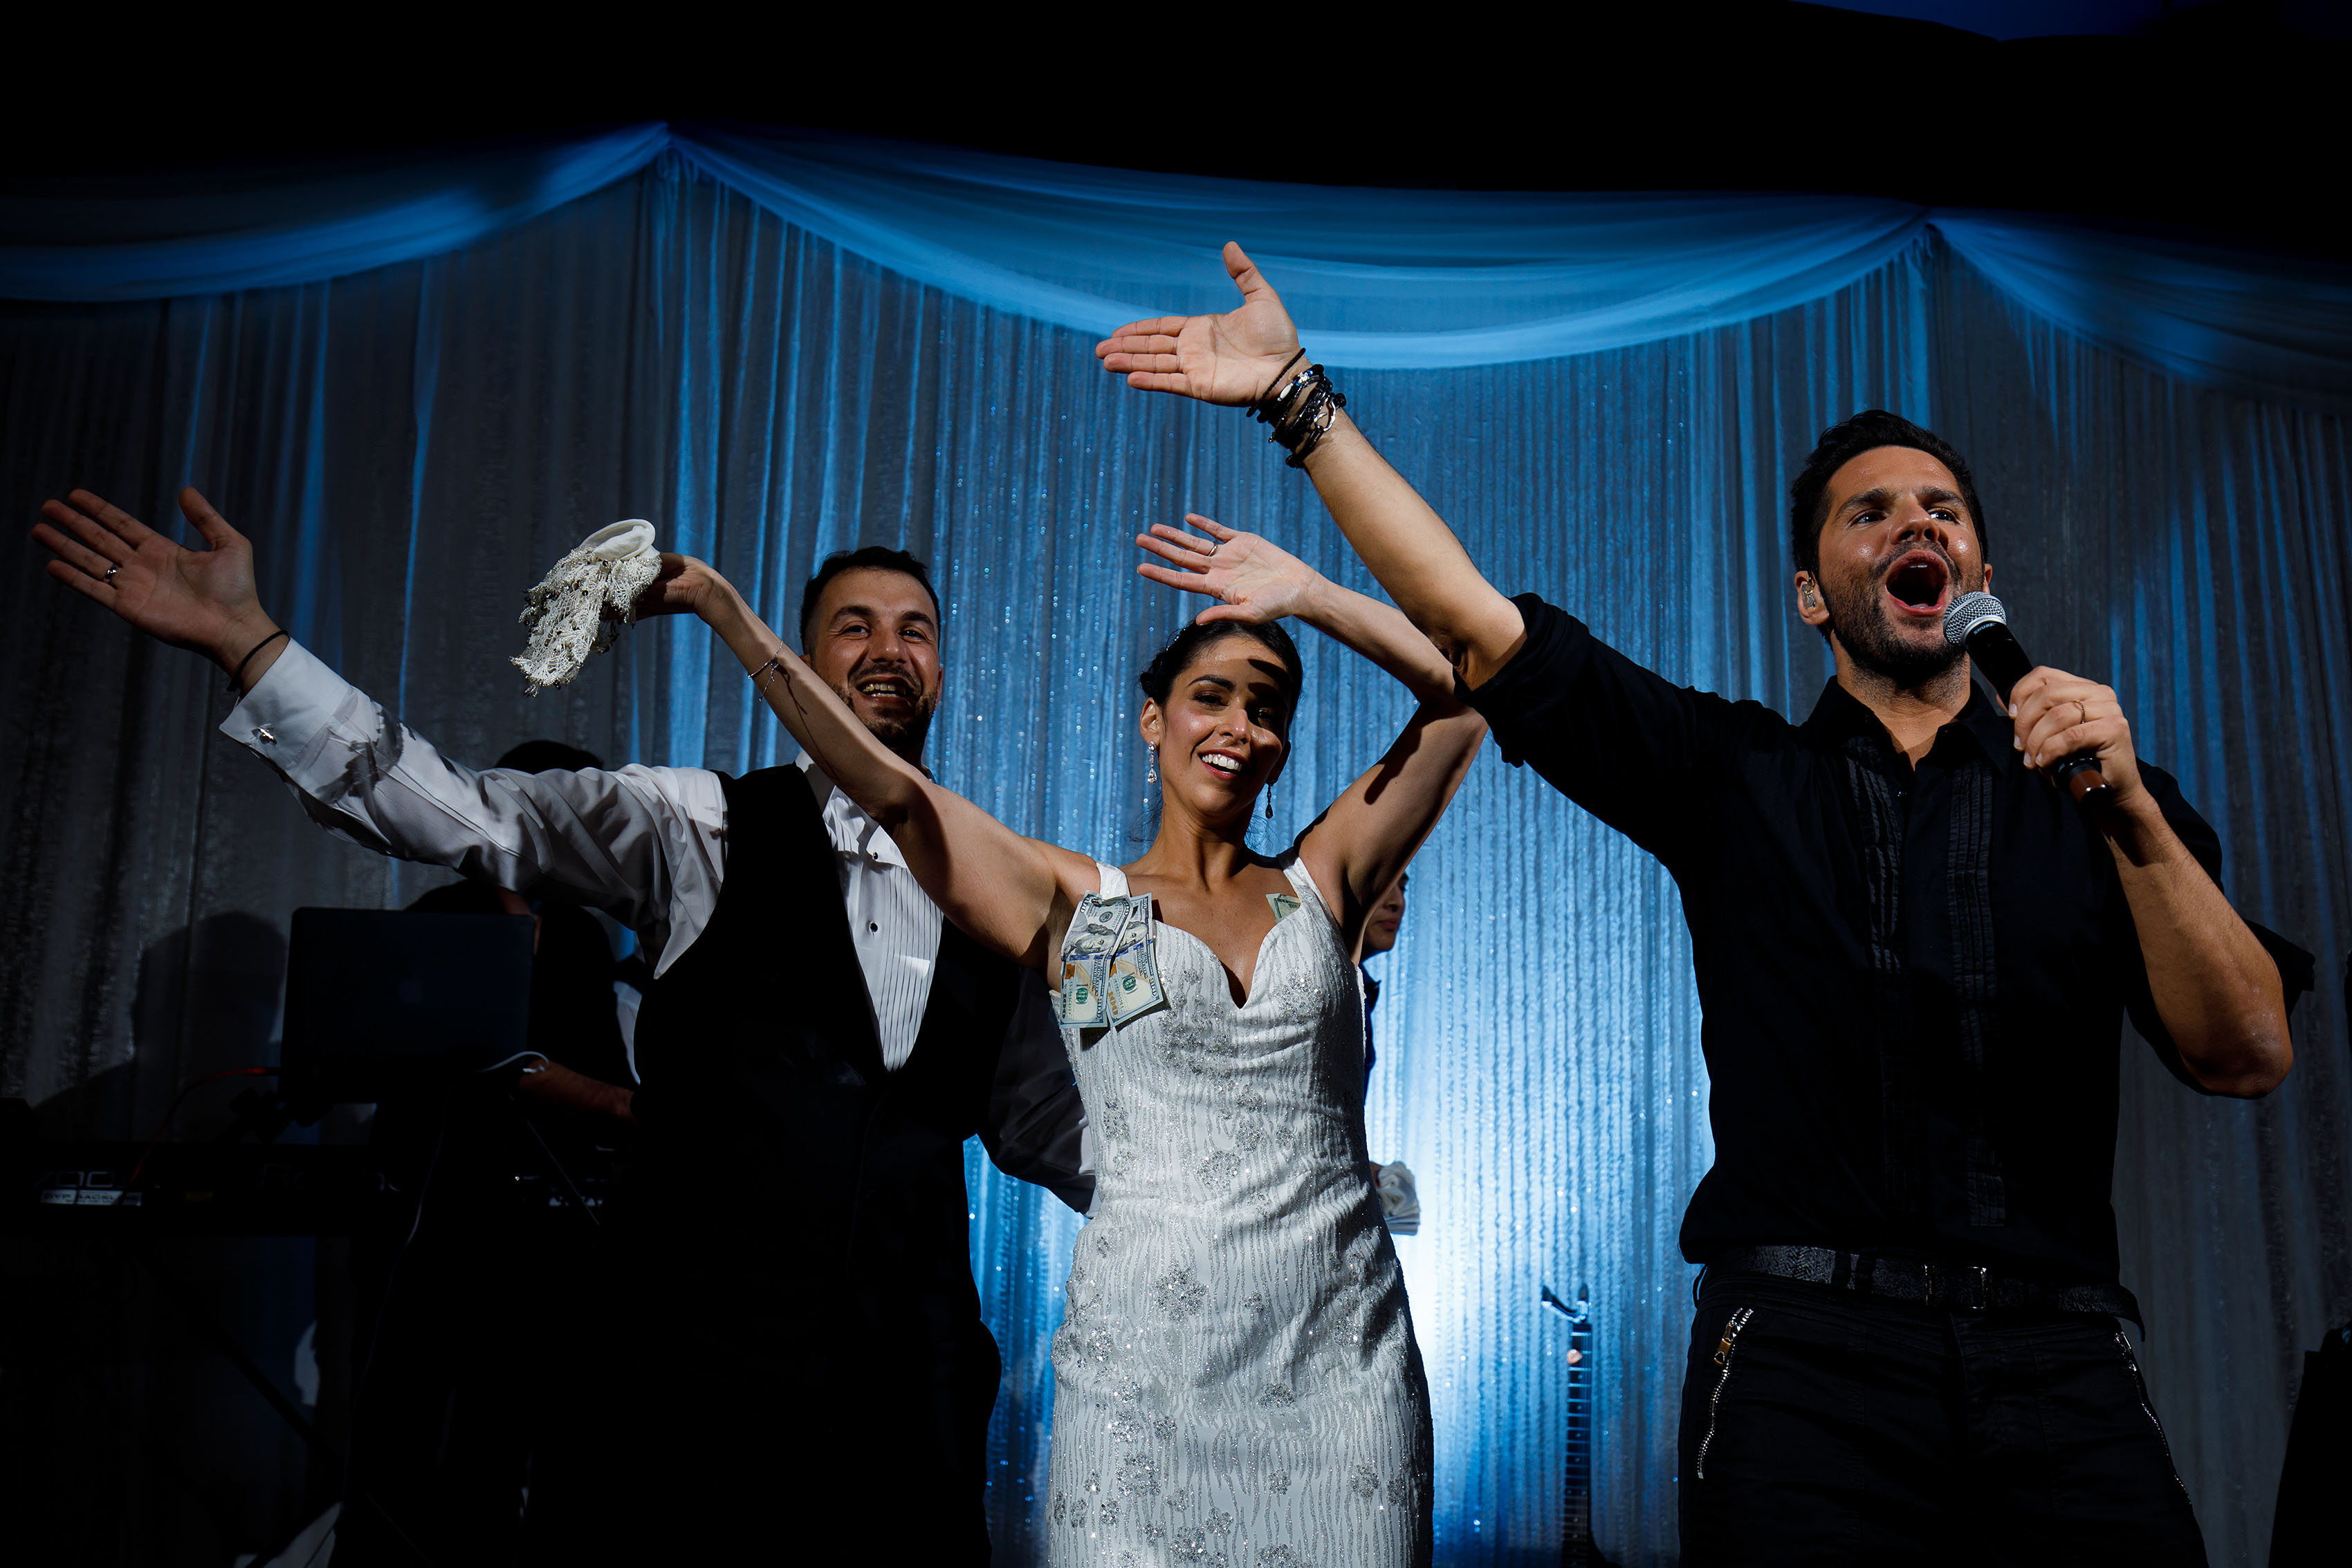 The bride and groom dance on stage as Greek pop artist Giorgos Tsalikis performs during their Albuquerque Greek Orthodox wedding reception at the Sheraton uptown